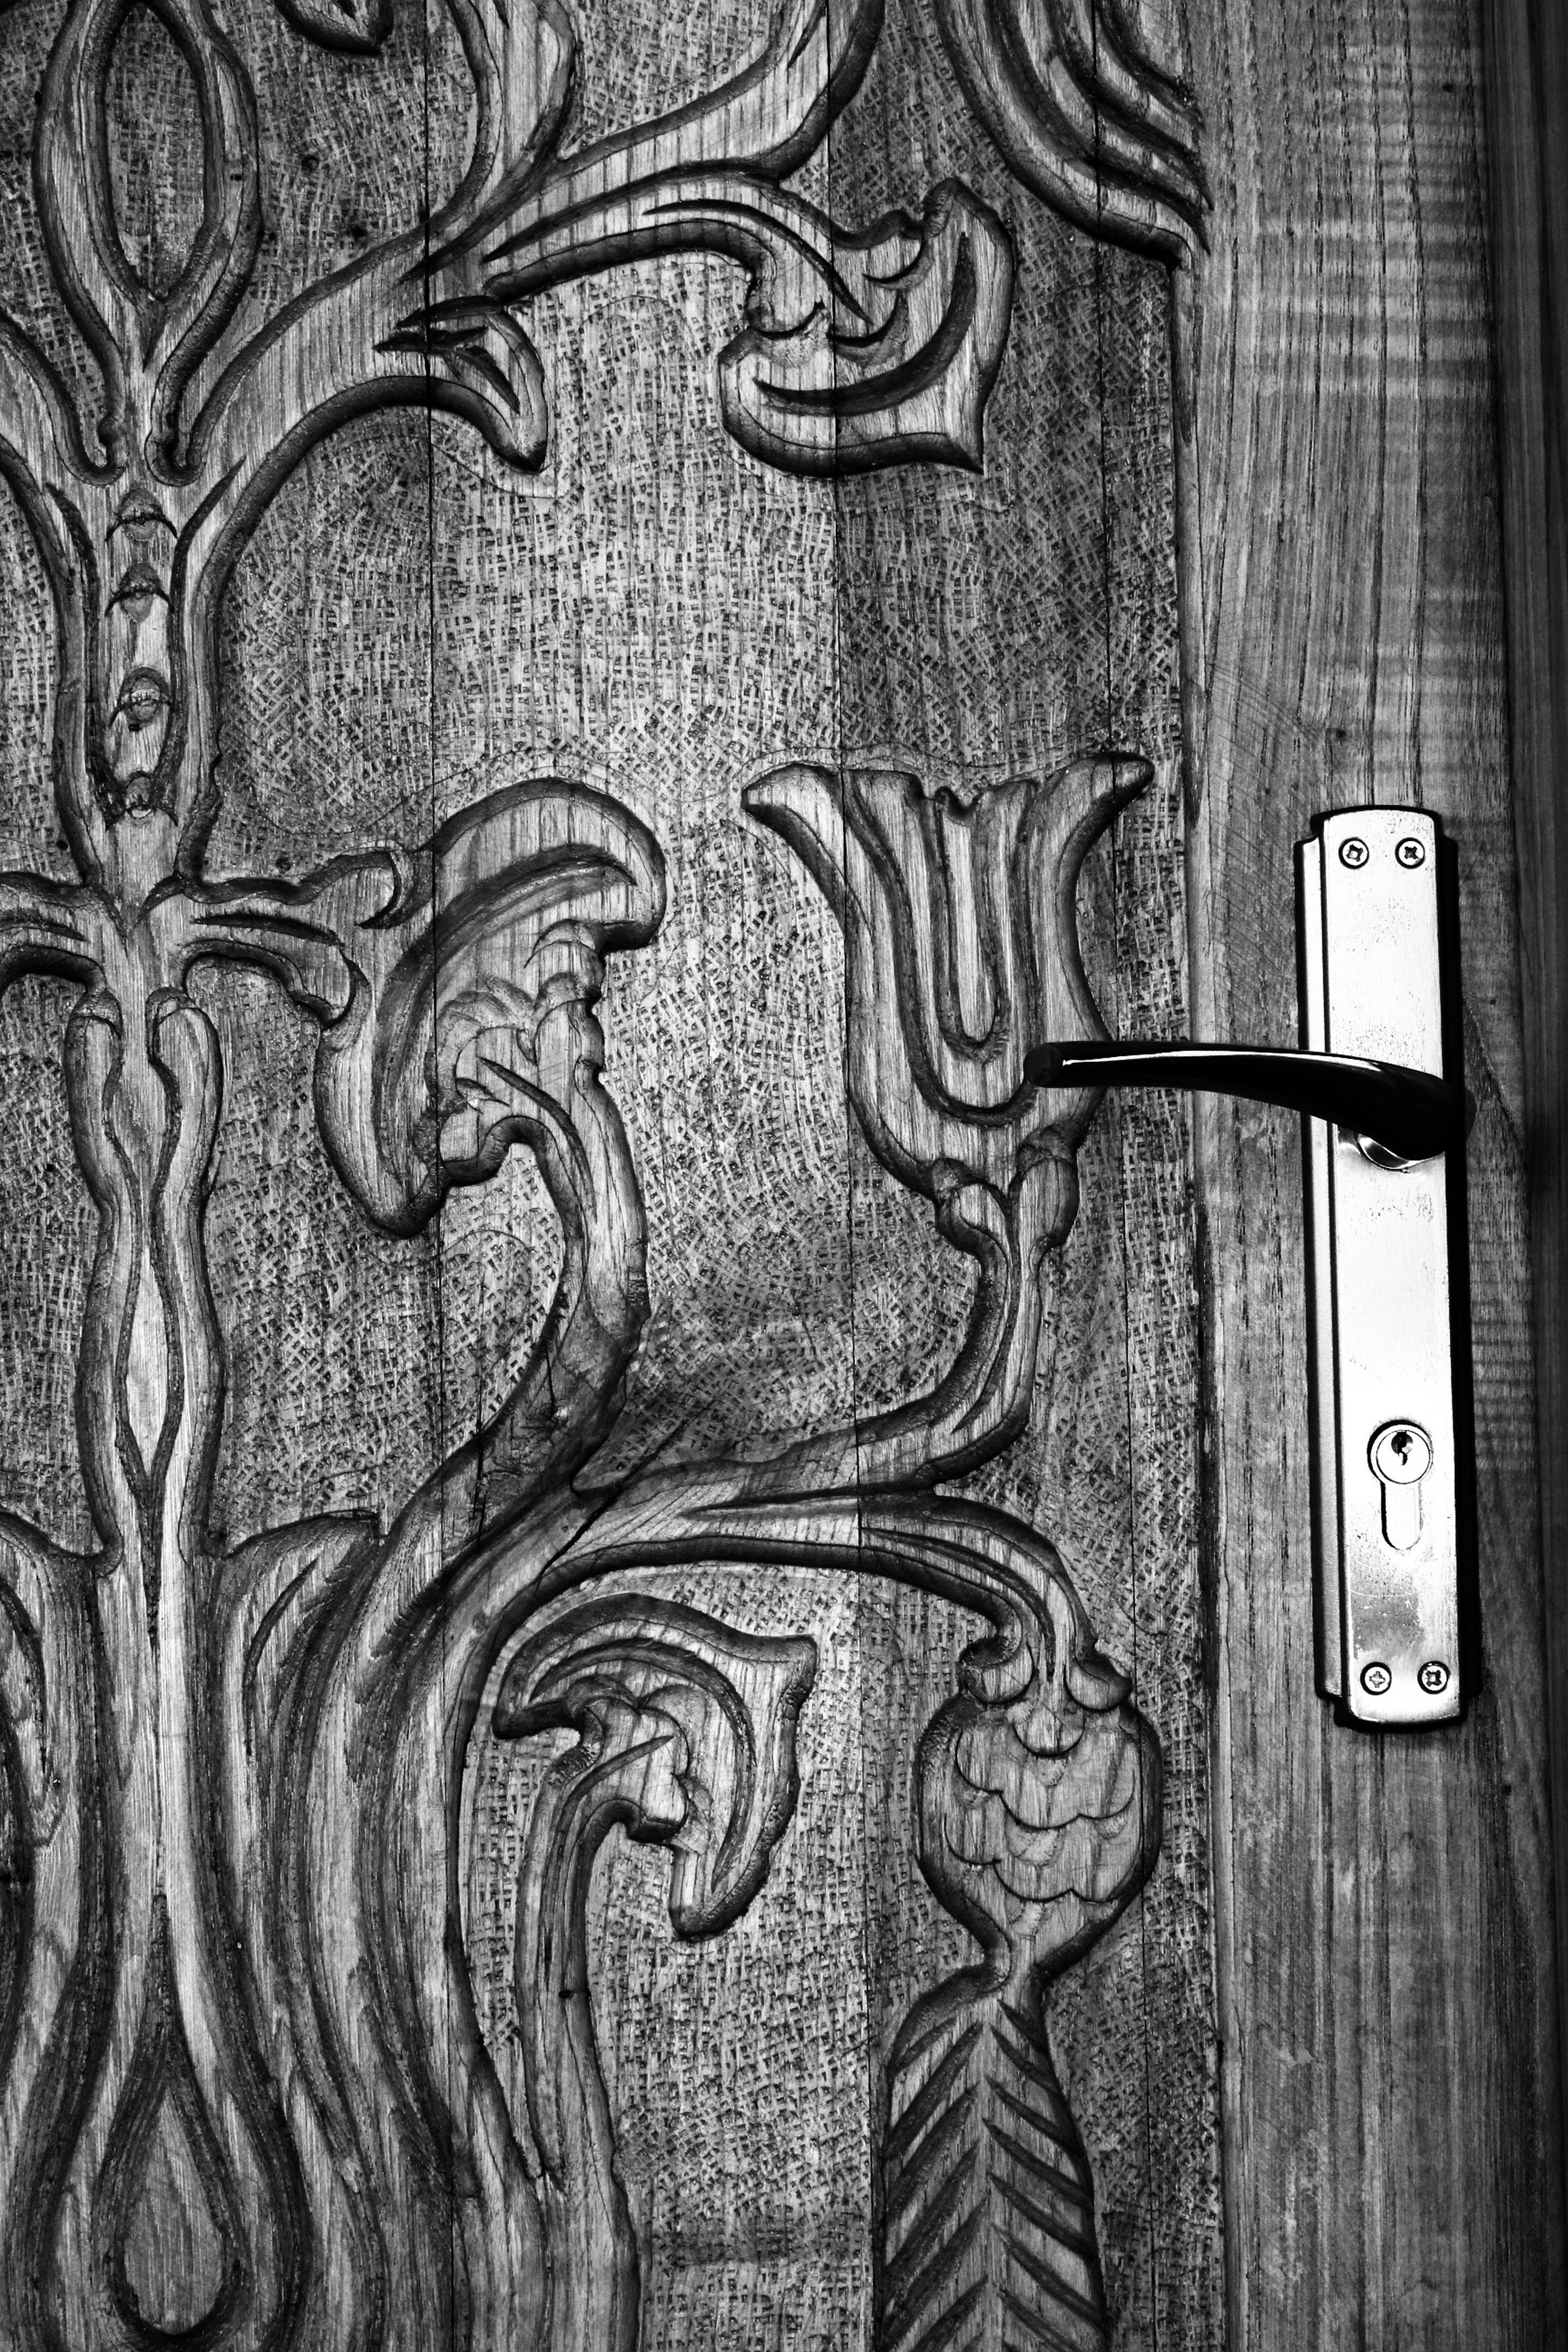 indoors, close-up, communication, art and craft, text, art, metal, wood - material, wall - building feature, creativity, western script, design, pattern, wooden, number, door, metallic, part of, no people, human representation